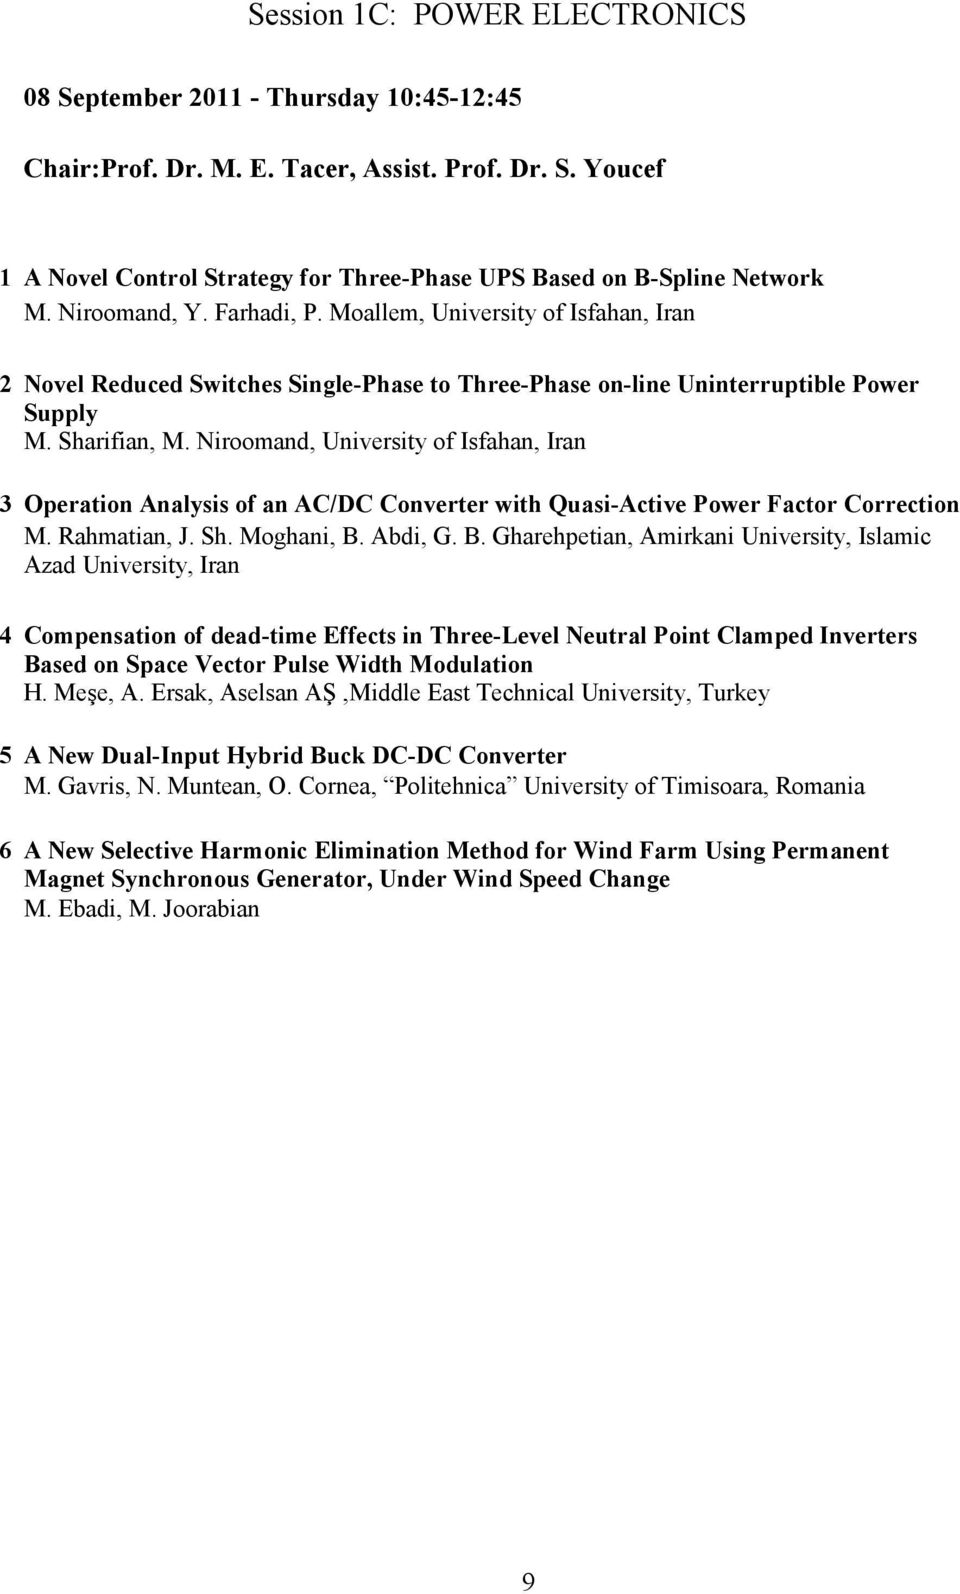 Niroomand, University of Isfahan, Iran 3 Operation Analysis of an AC/DC Converter with Quasi-Active Power Factor Correction M. Rahmatian, J. Sh. Moghani, B.